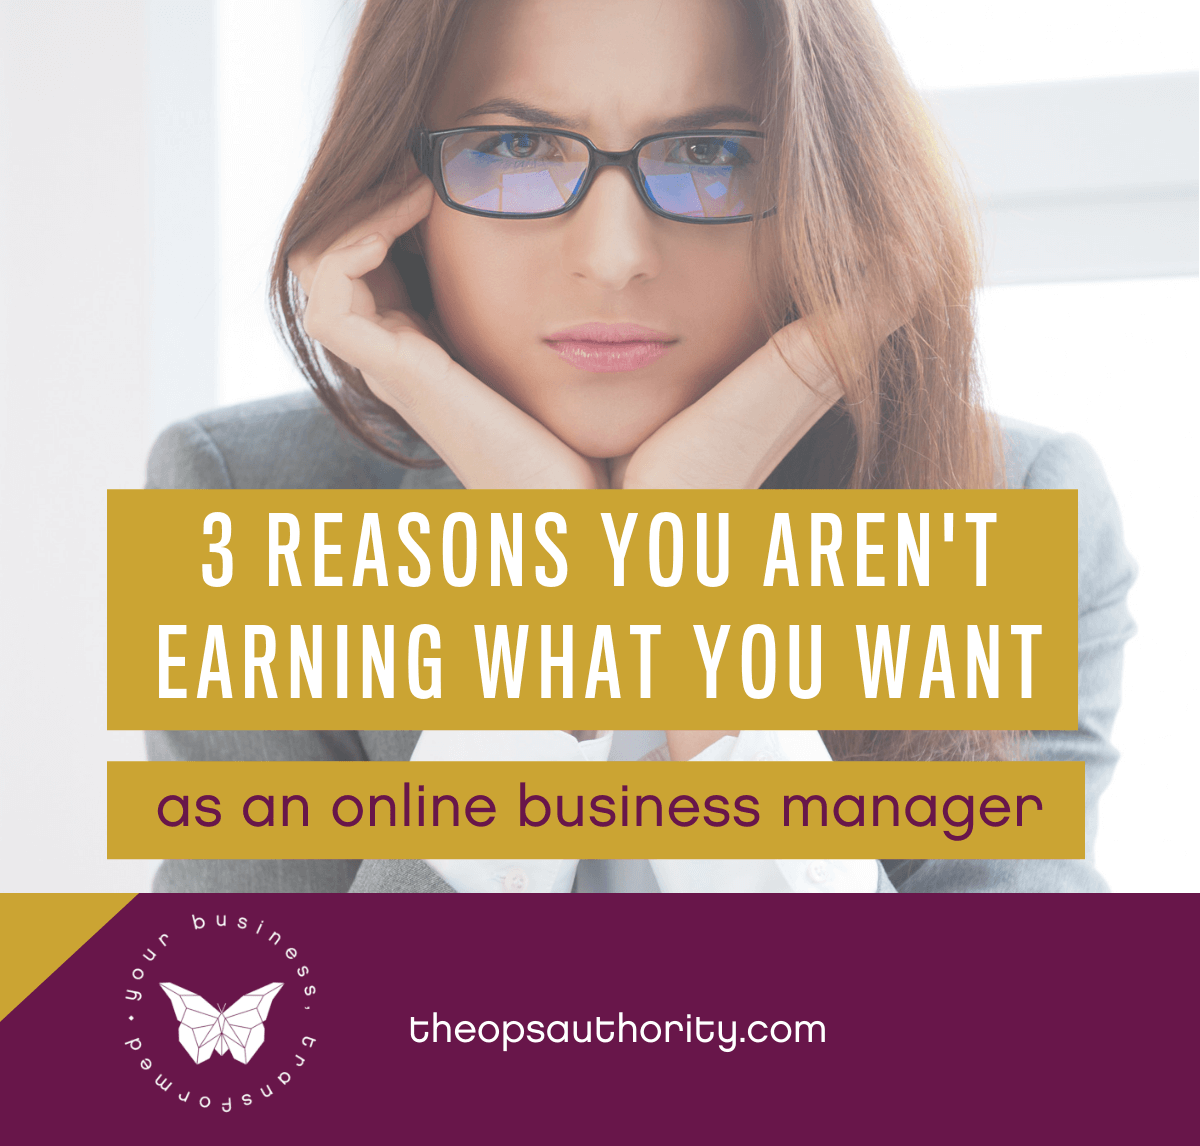 3 Reasons You Aren't Earning What You Want as an OBM